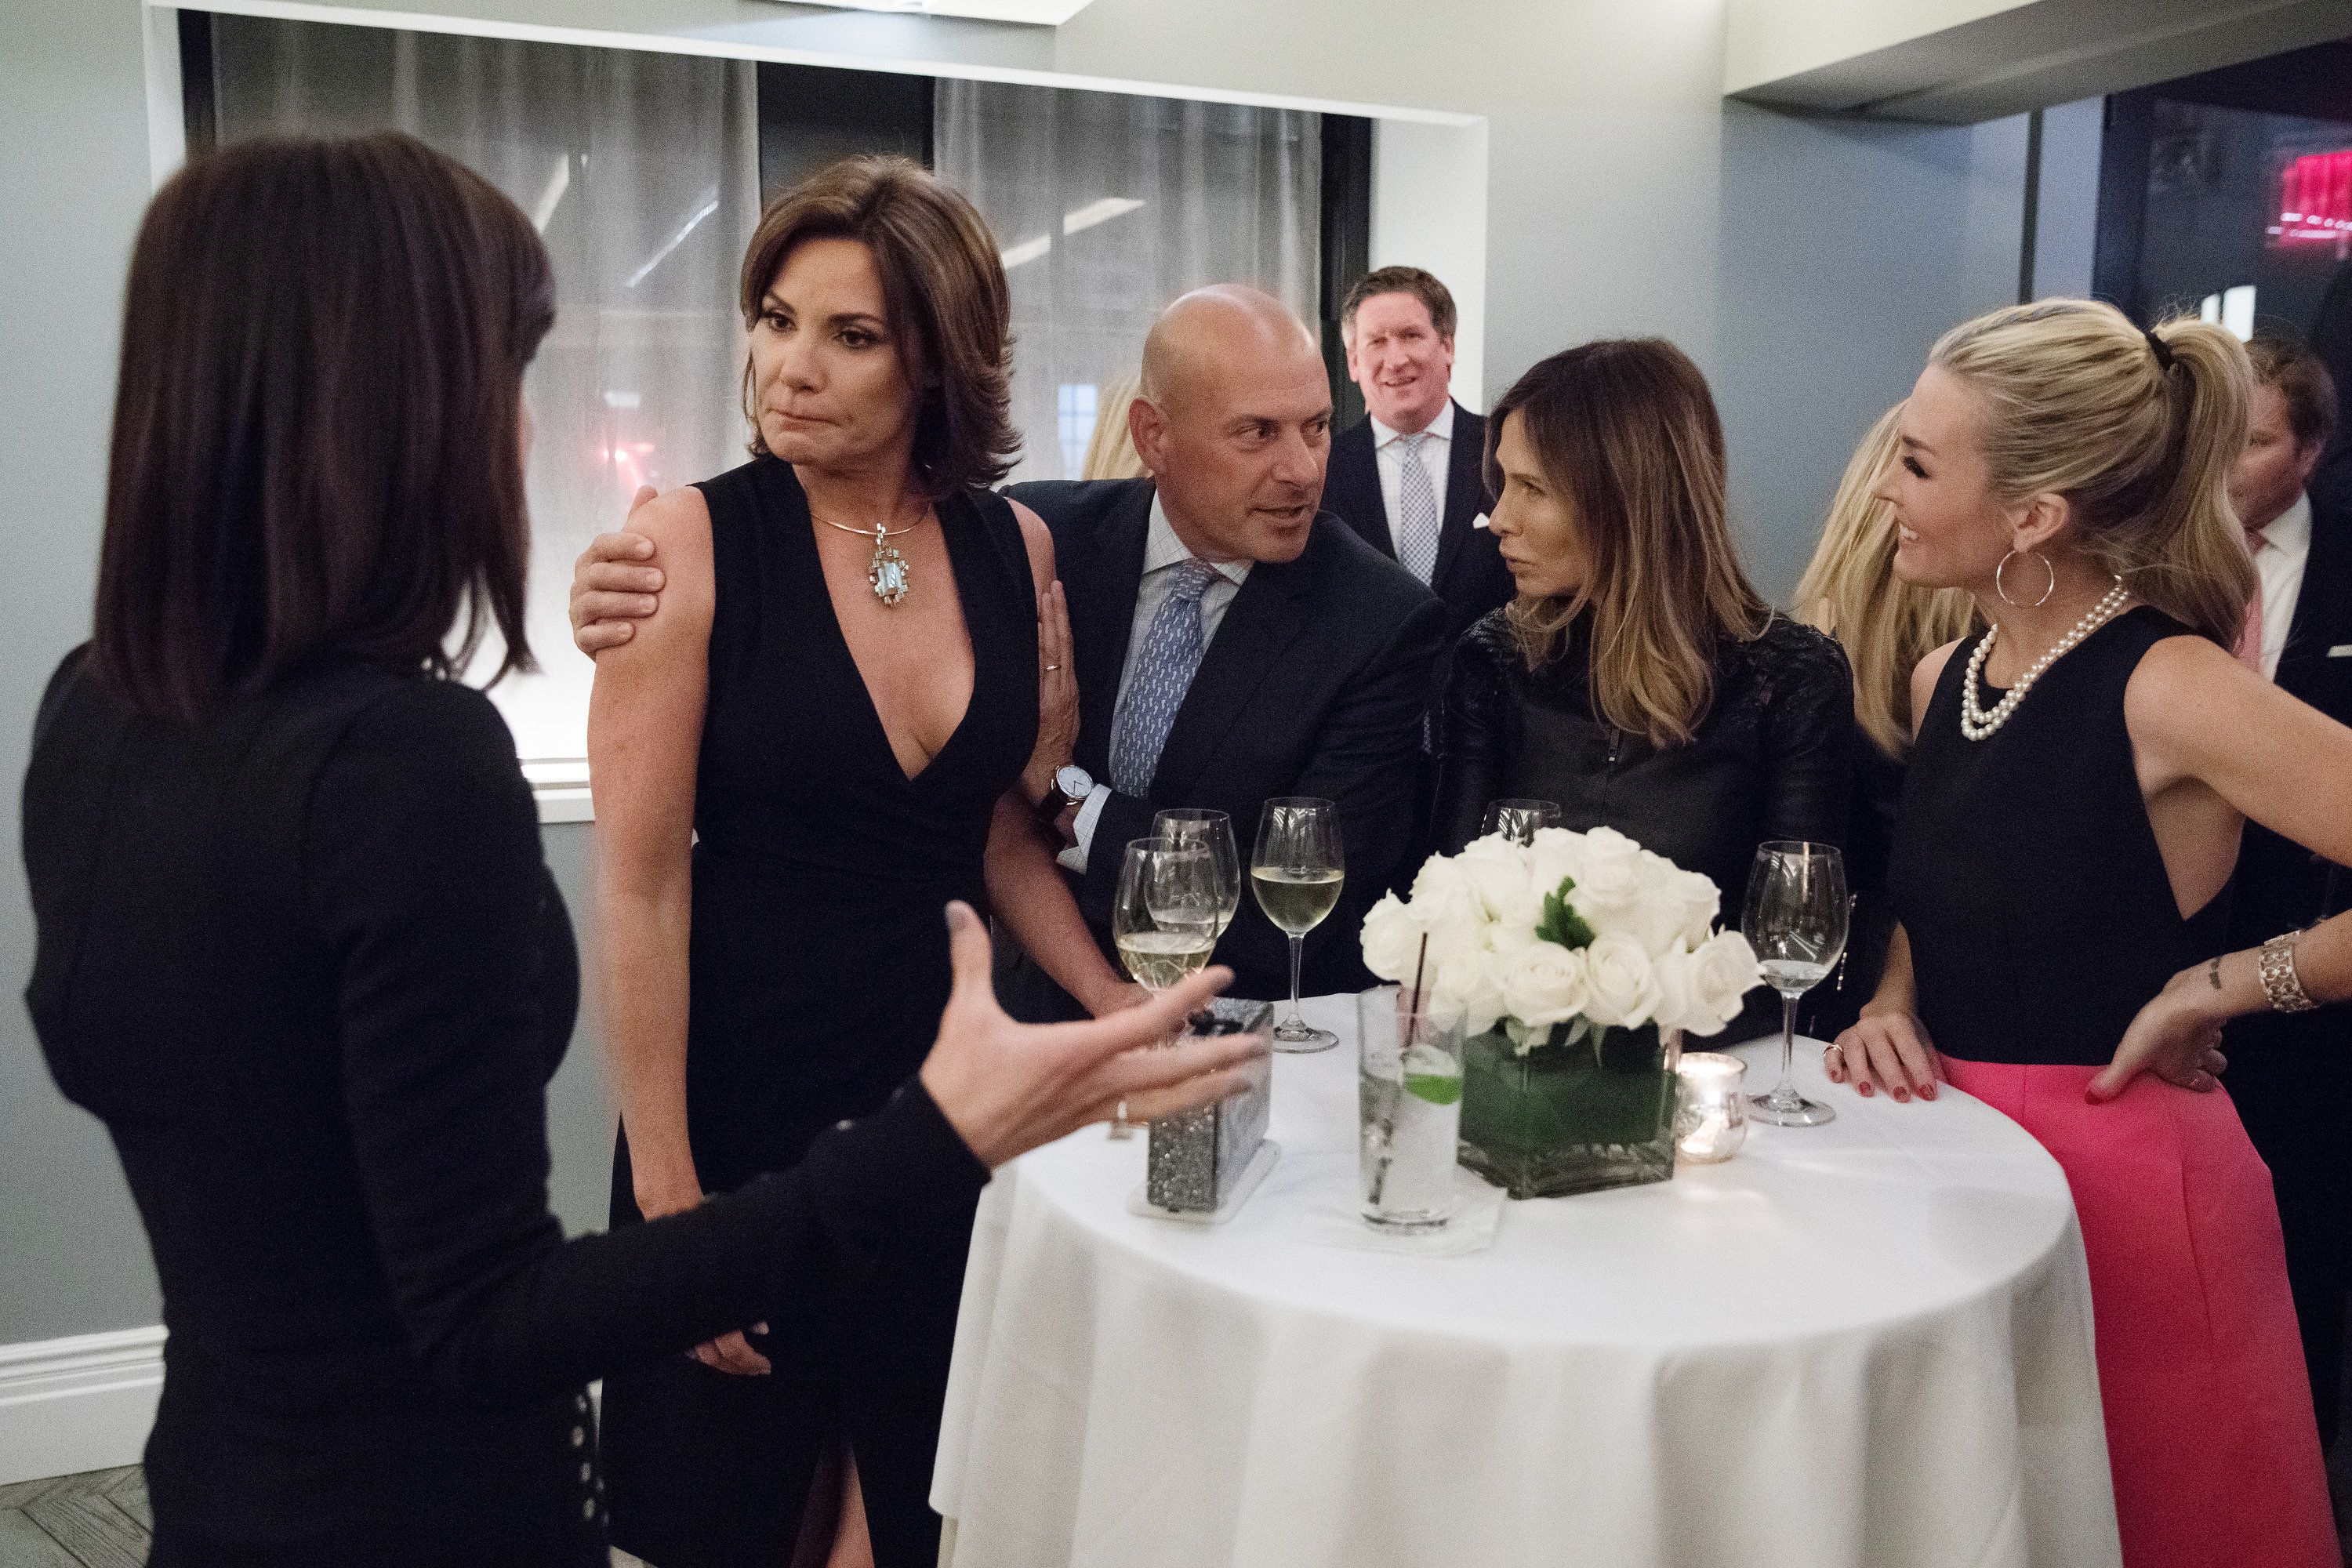 THE REAL HOUSEWIVES OF NEW YORK CITY -- 'A Countess No More' Episode 911 -- Pictured: (l-r) Luann D'Agostino, Tom D'Agostino, Carole Radziwill, Tinsley Mortimer -- (Photo by: Heidi Gutman/Bravo)